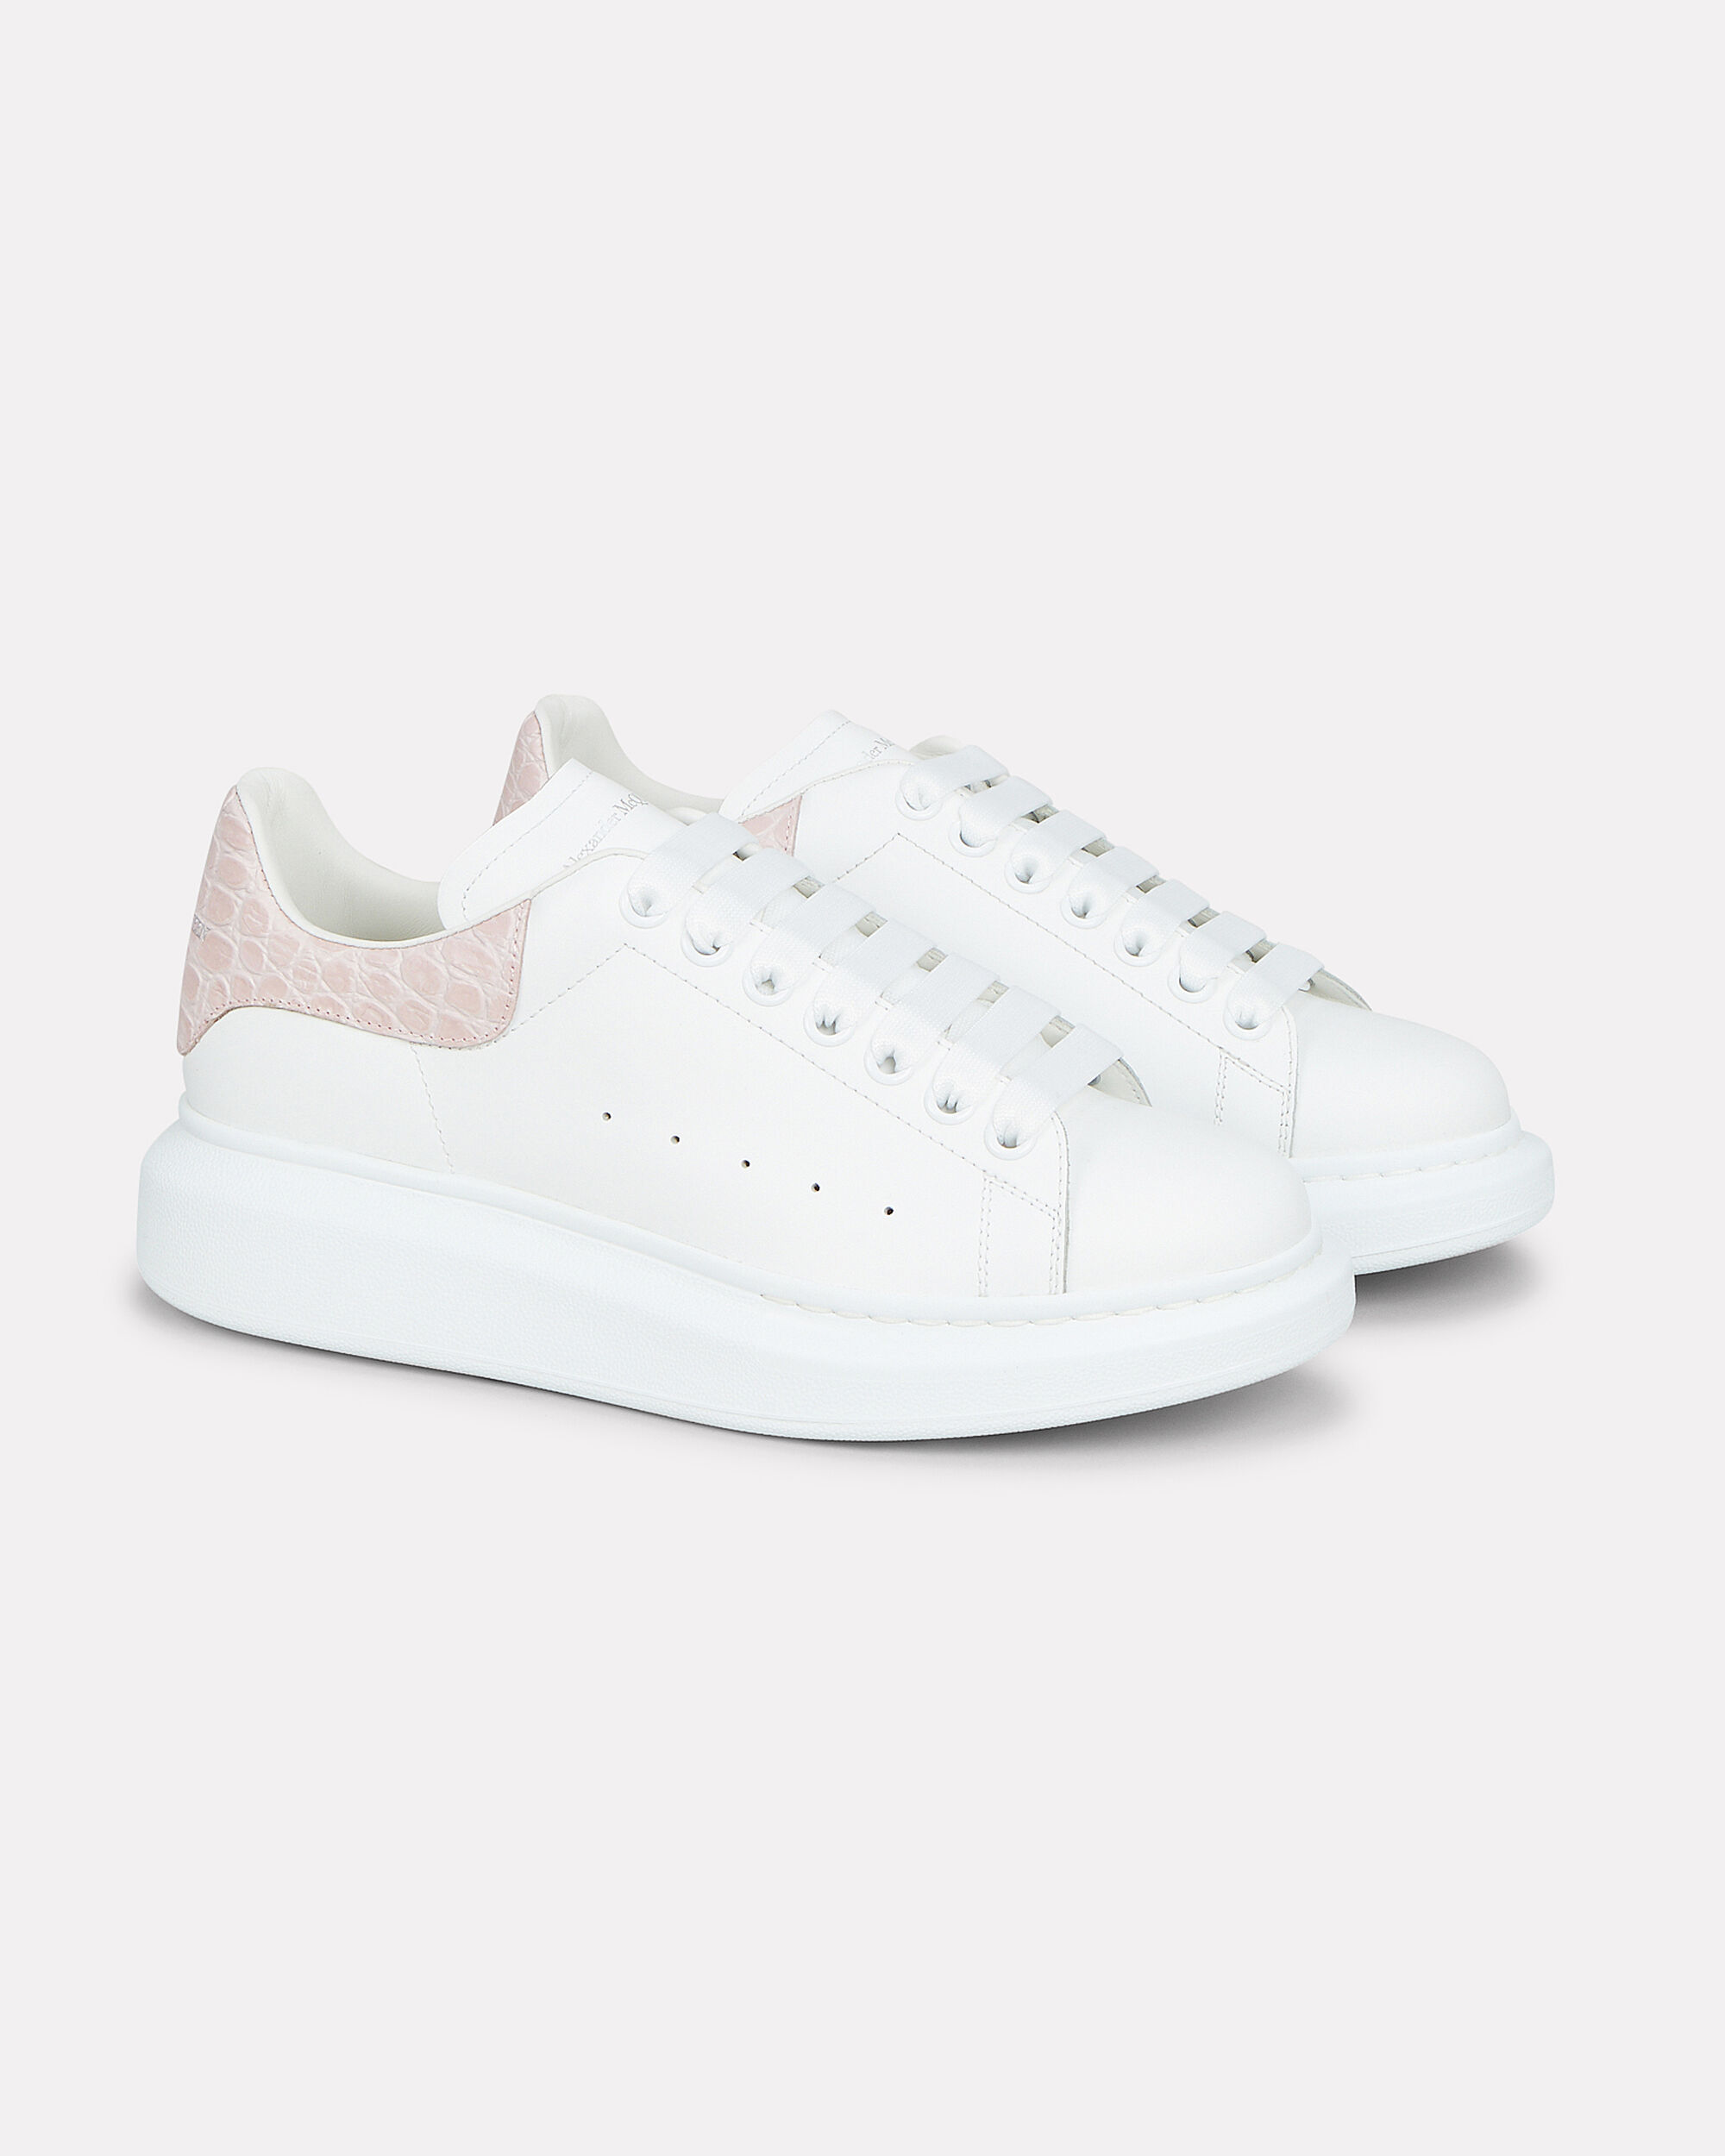 Oversized Pink Back Leather Sneakers, WHITE/PINK, hi-res